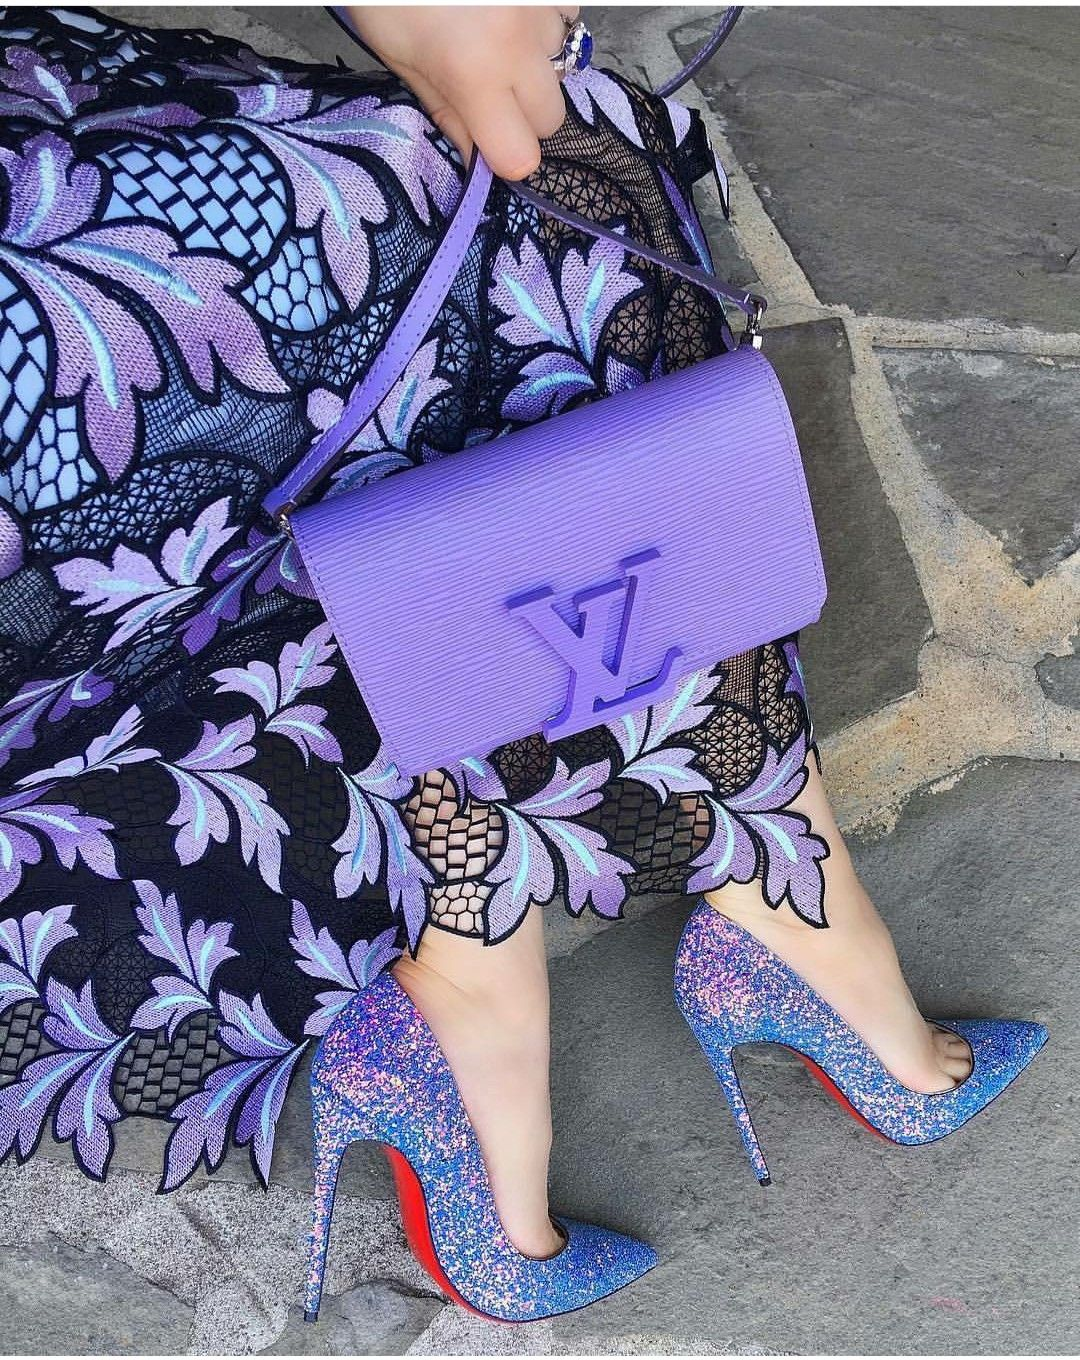 Purple dress with shoes  Pin by Raihana Noori on PURPLE WHISPERS  Pinterest  Whisper and